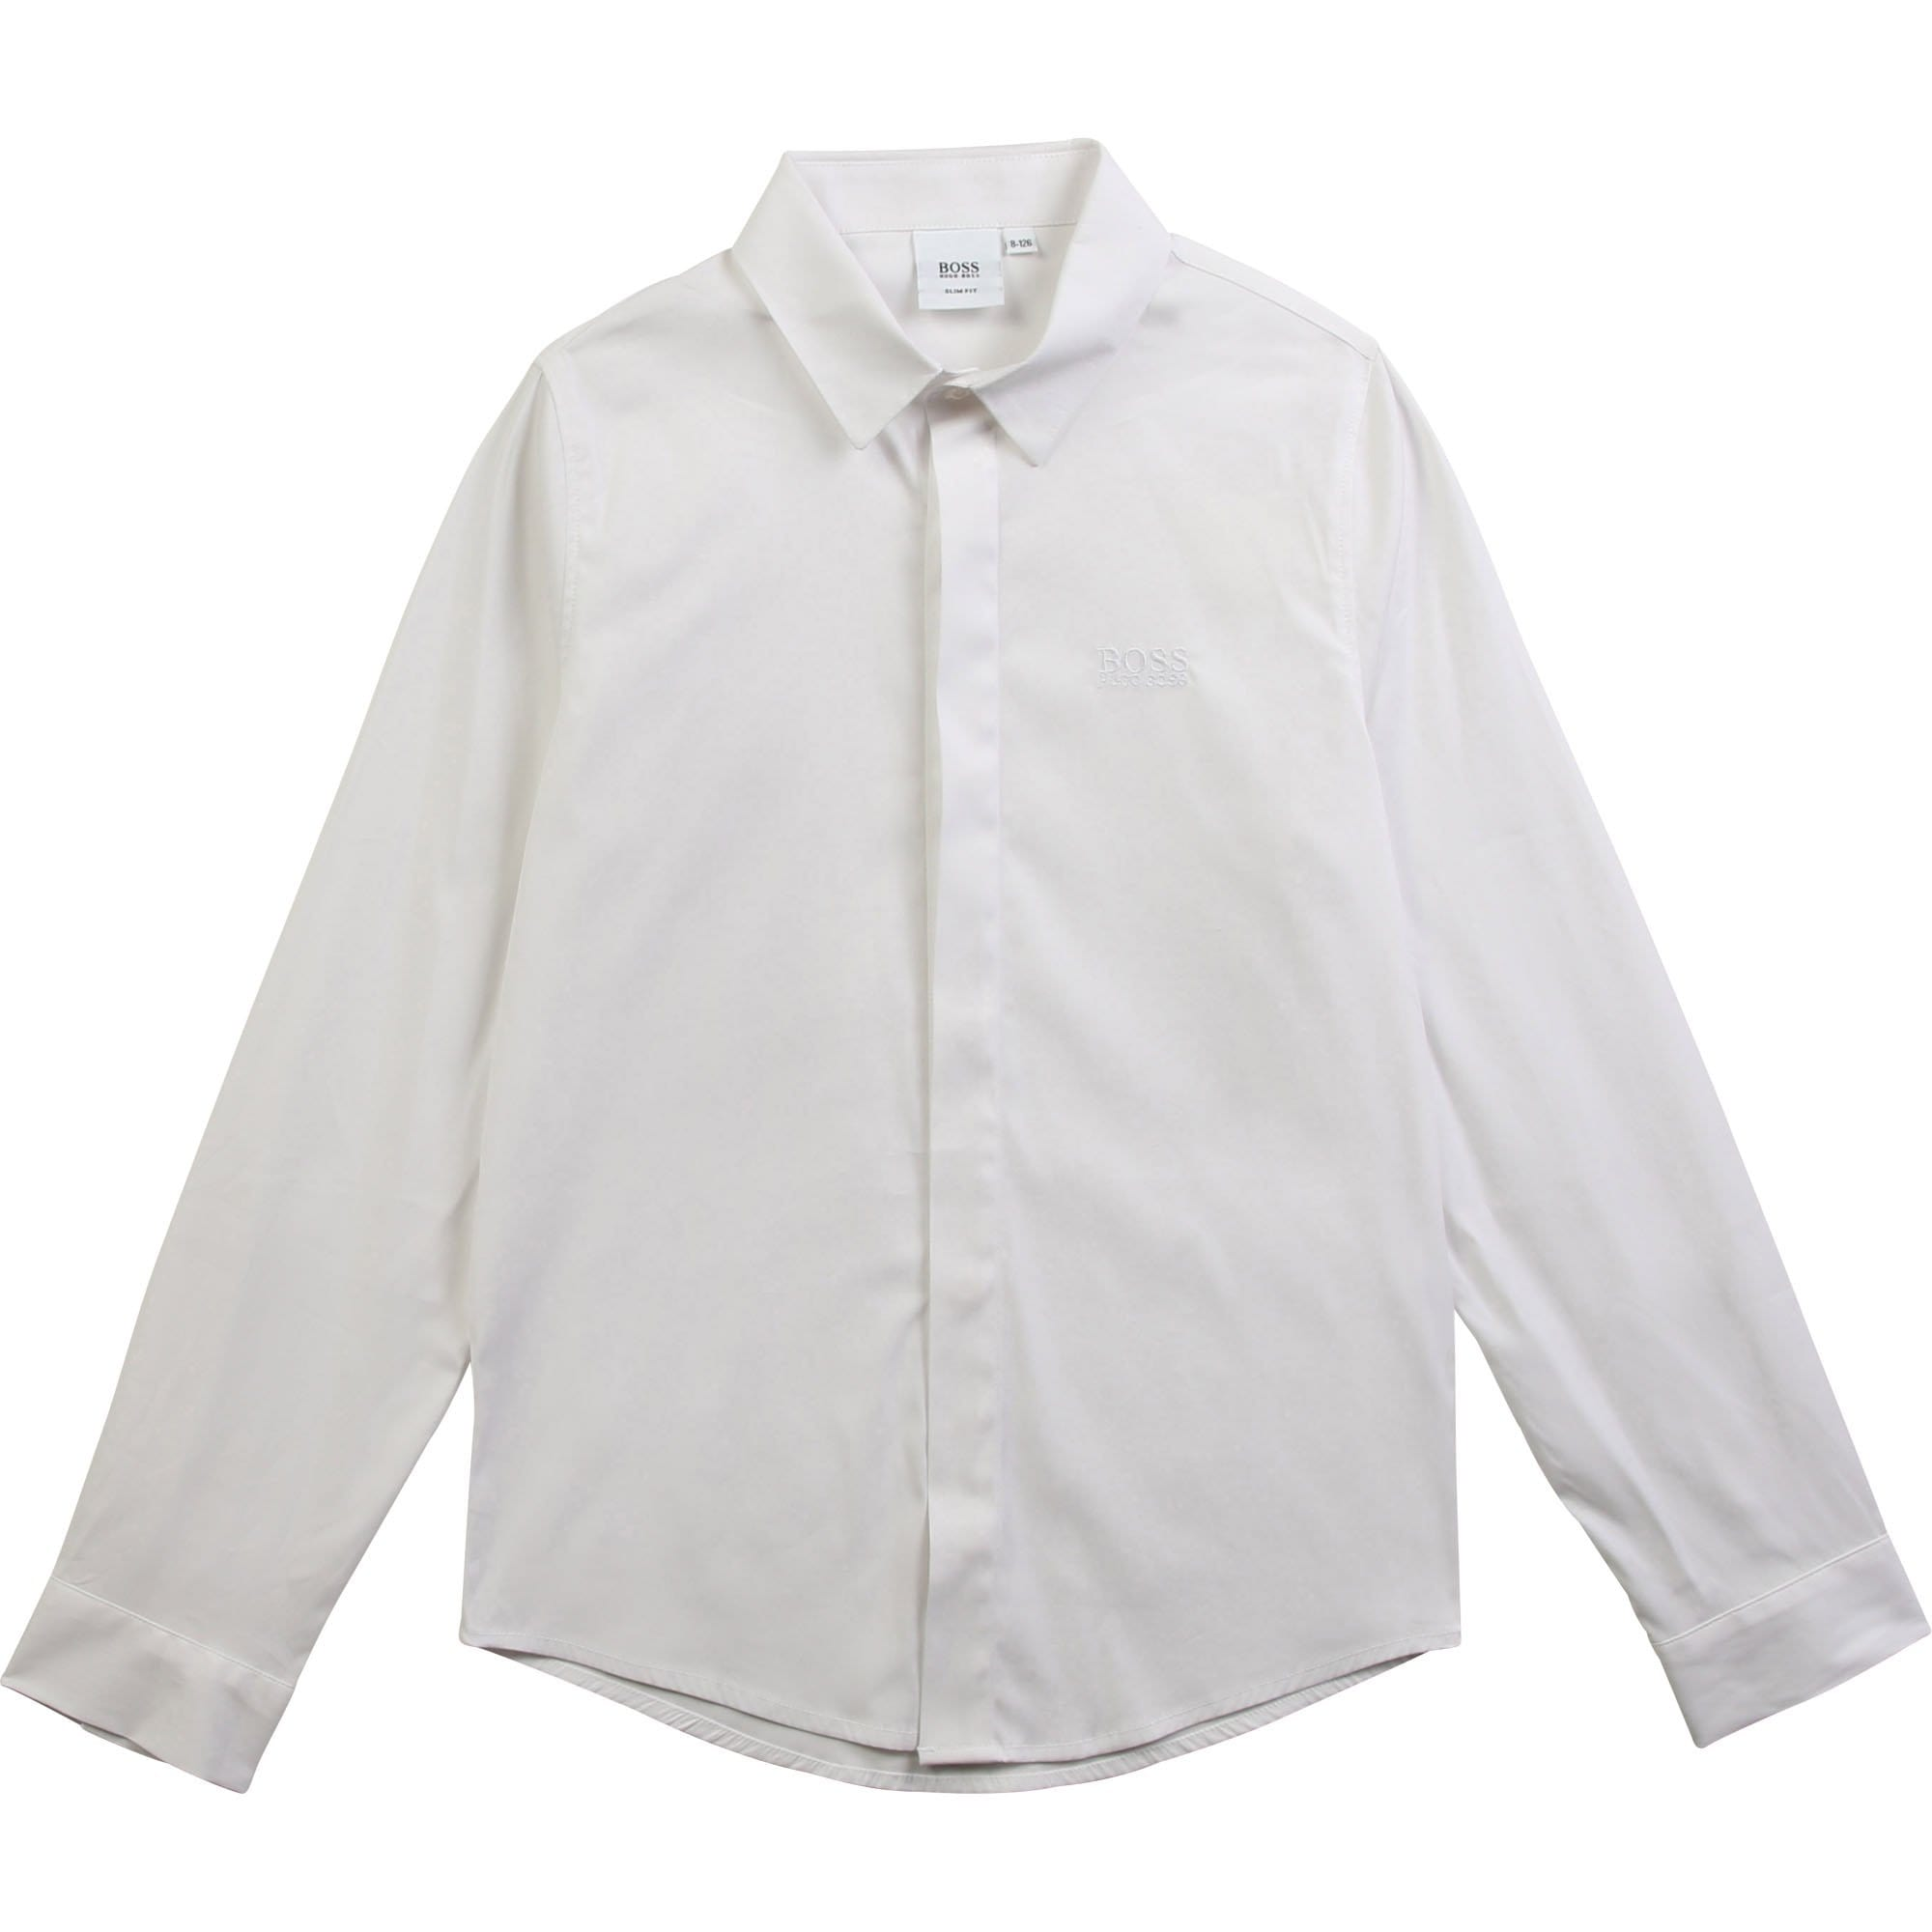 Hugo Boss Long Sleeved Shirt - White J25E94/10B